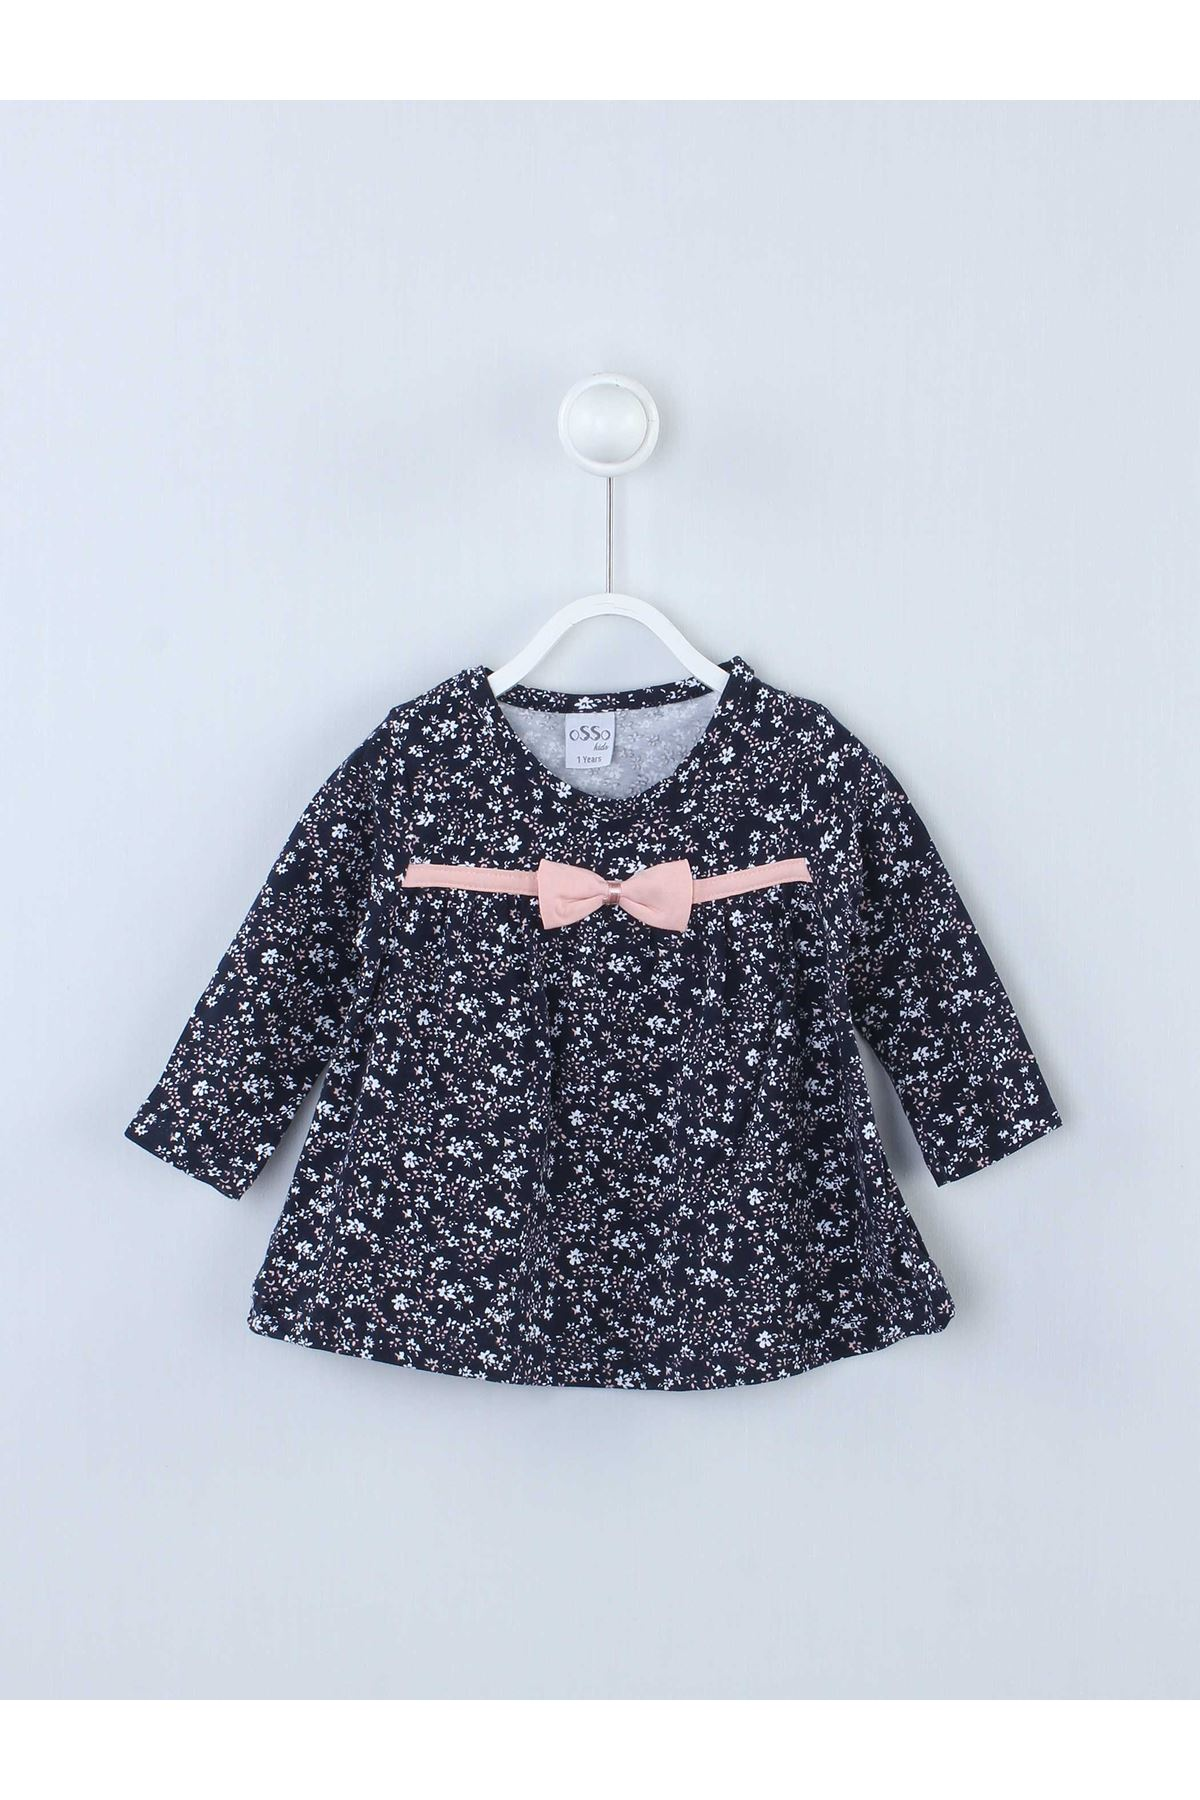 Powder Pink girls Child tights Children suit top T-shirt tights cotton Kids daily season wear outfit models